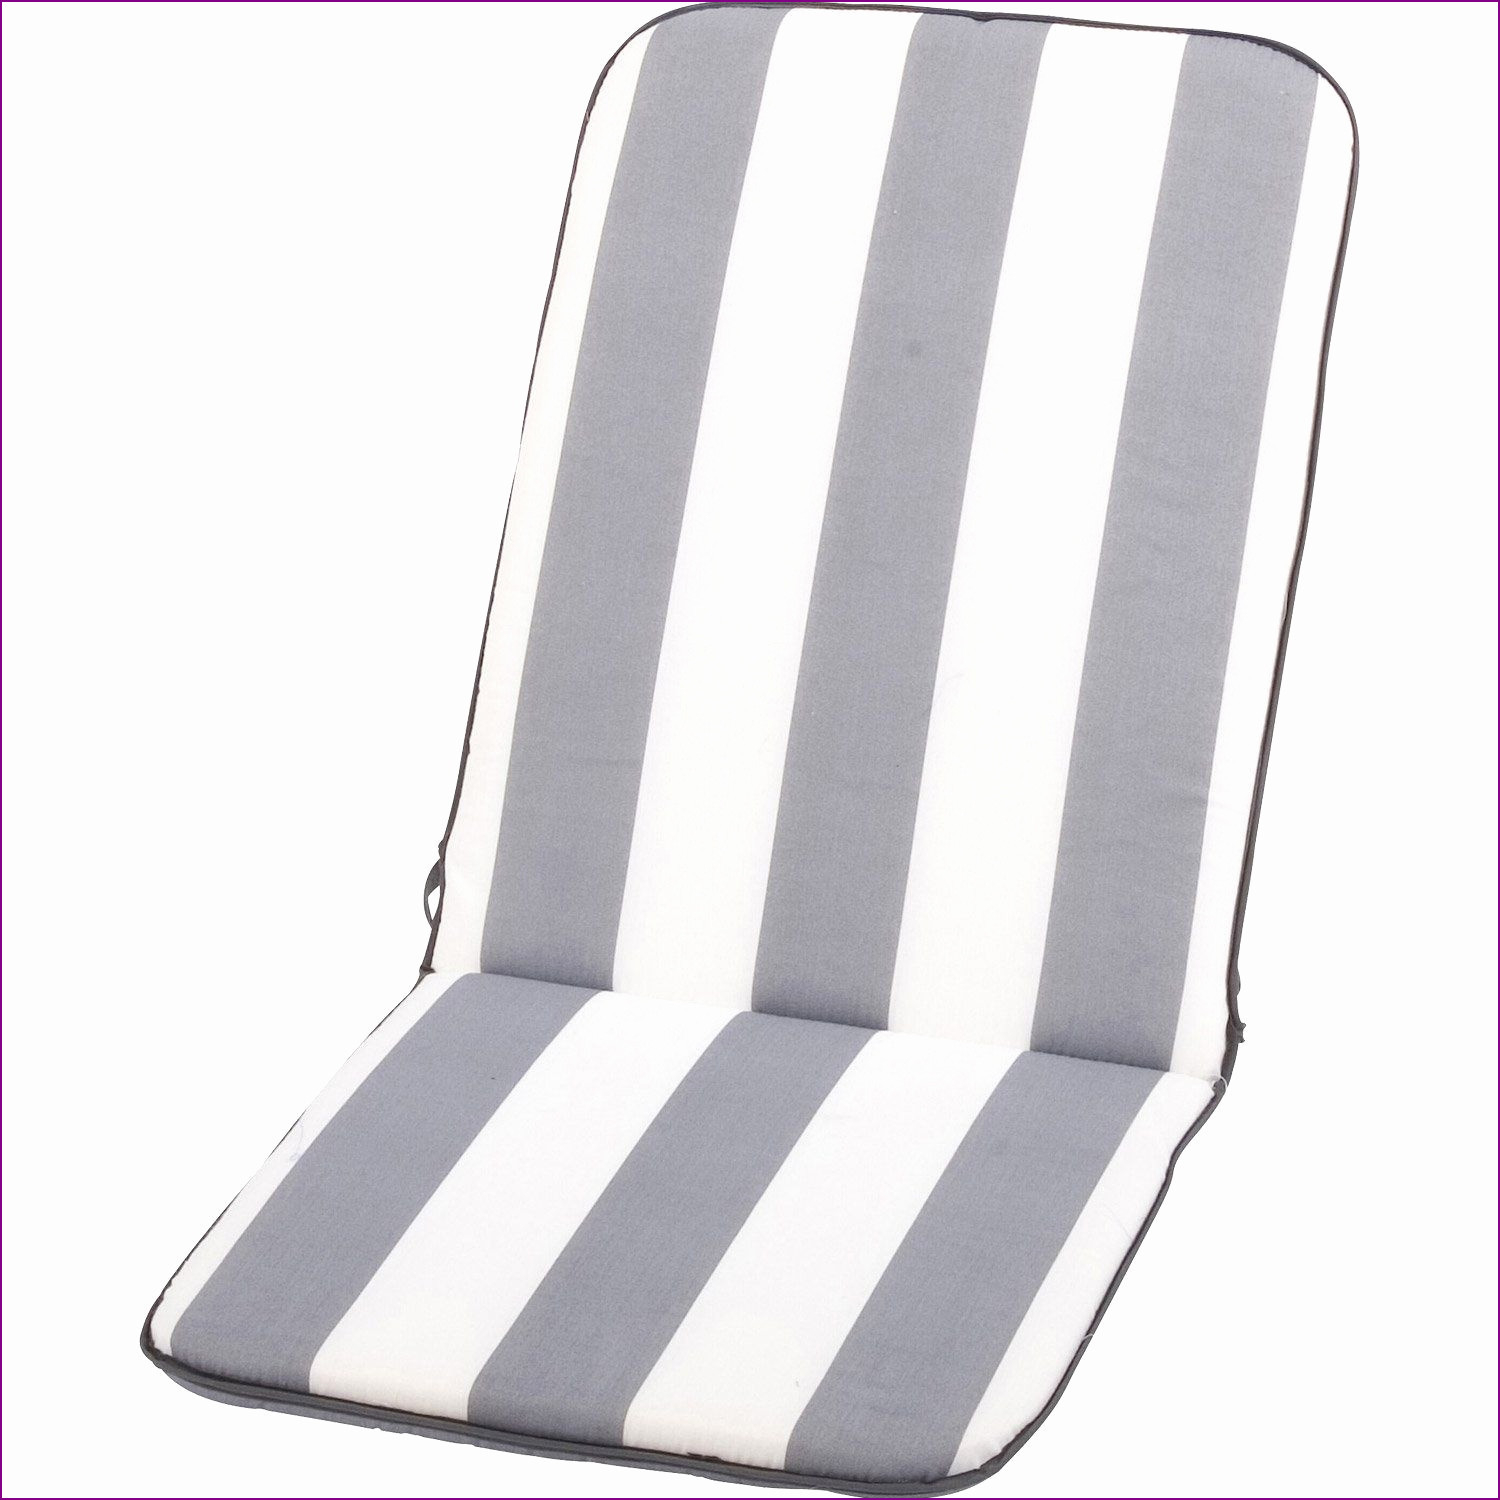 Coussin Chaise Gifi 64 Remise Www Muminlerotomotiv Com Tr